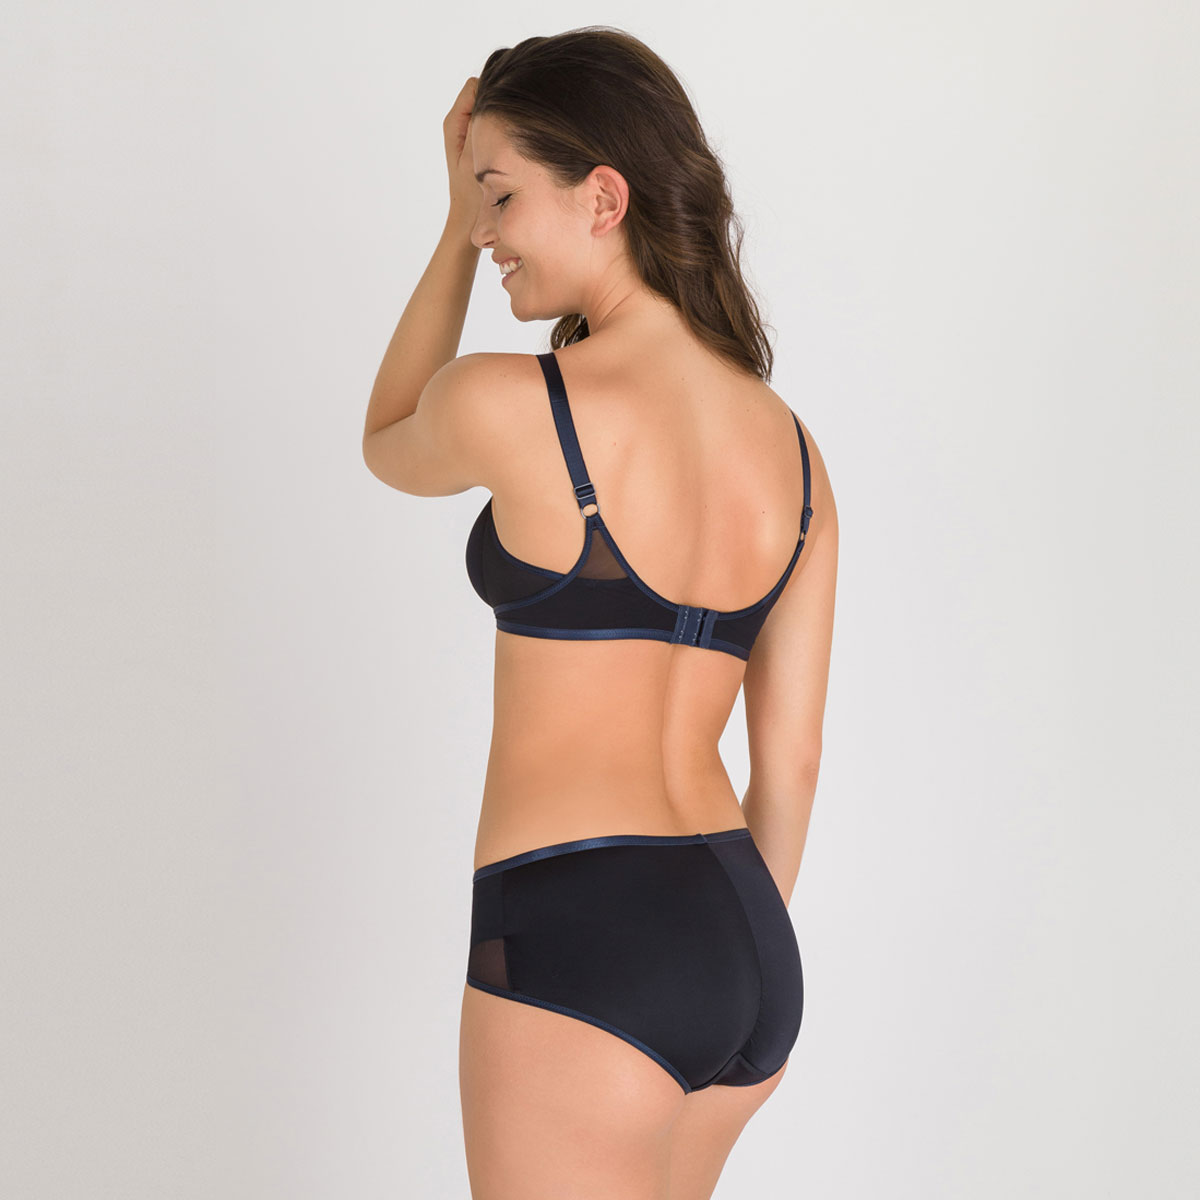 Soutien-gorge sans armatures noir - Ideal Beauty, , PLAYTEX